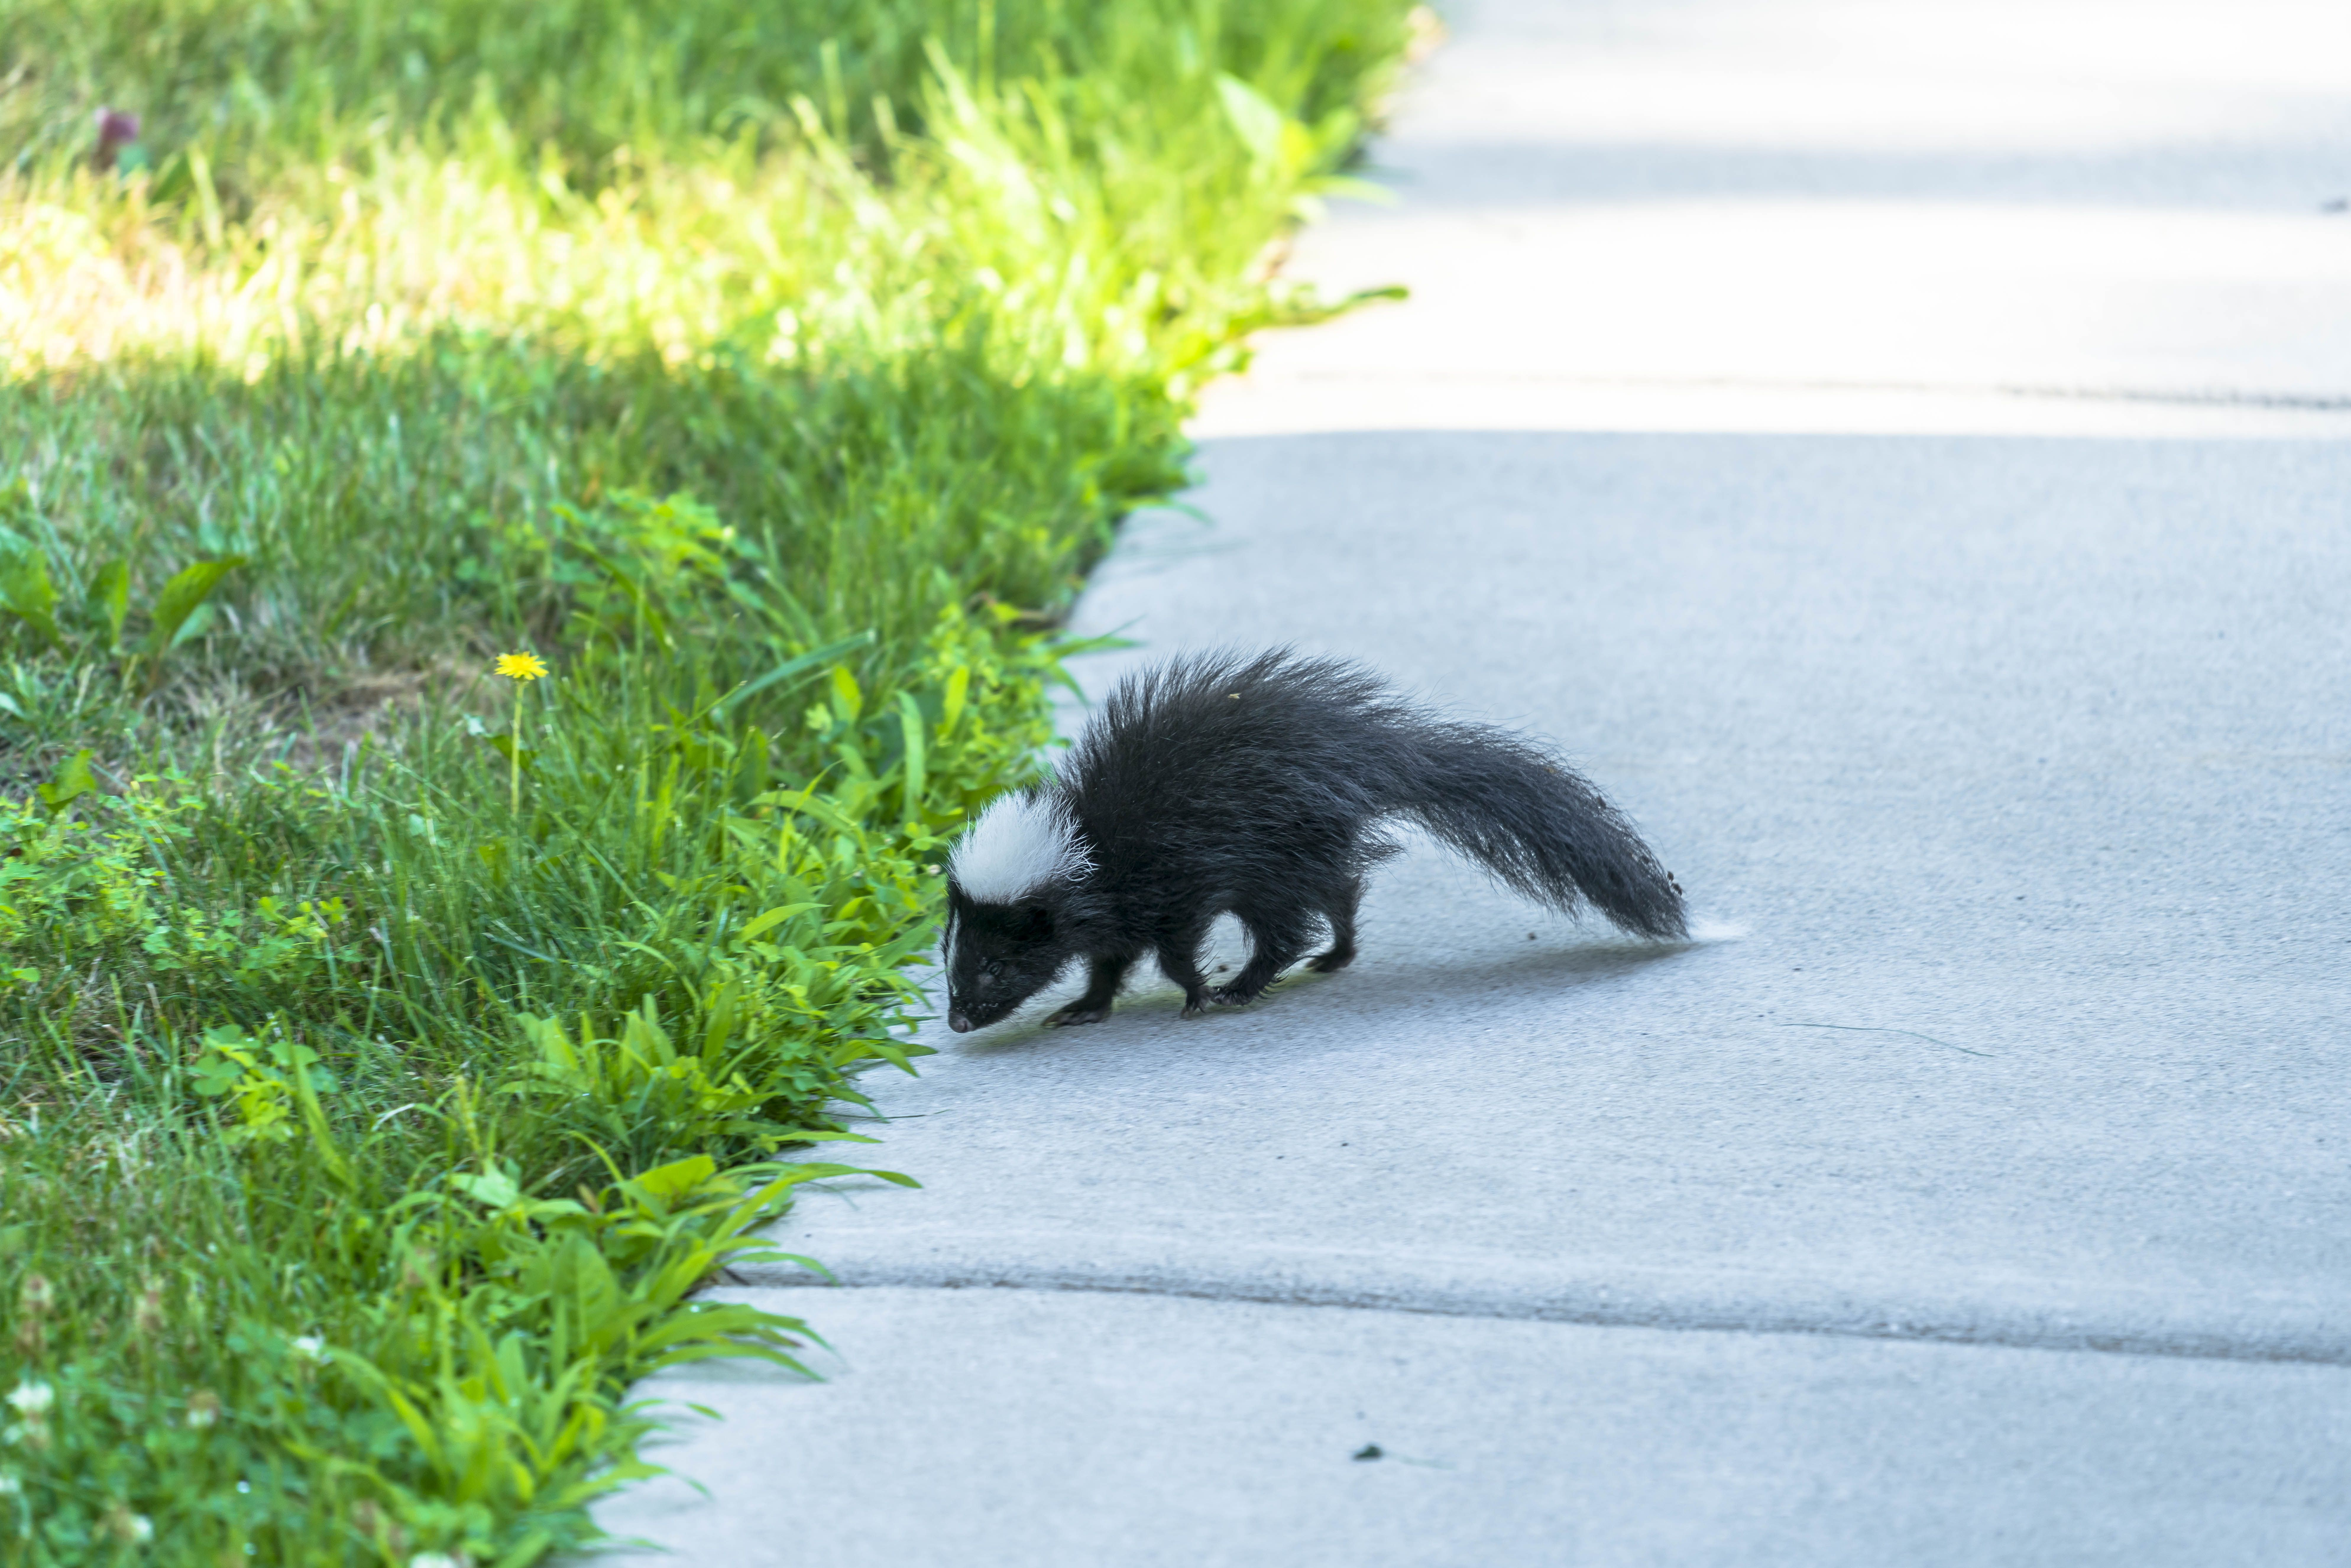 A little baby skunk to brighten your morning :)